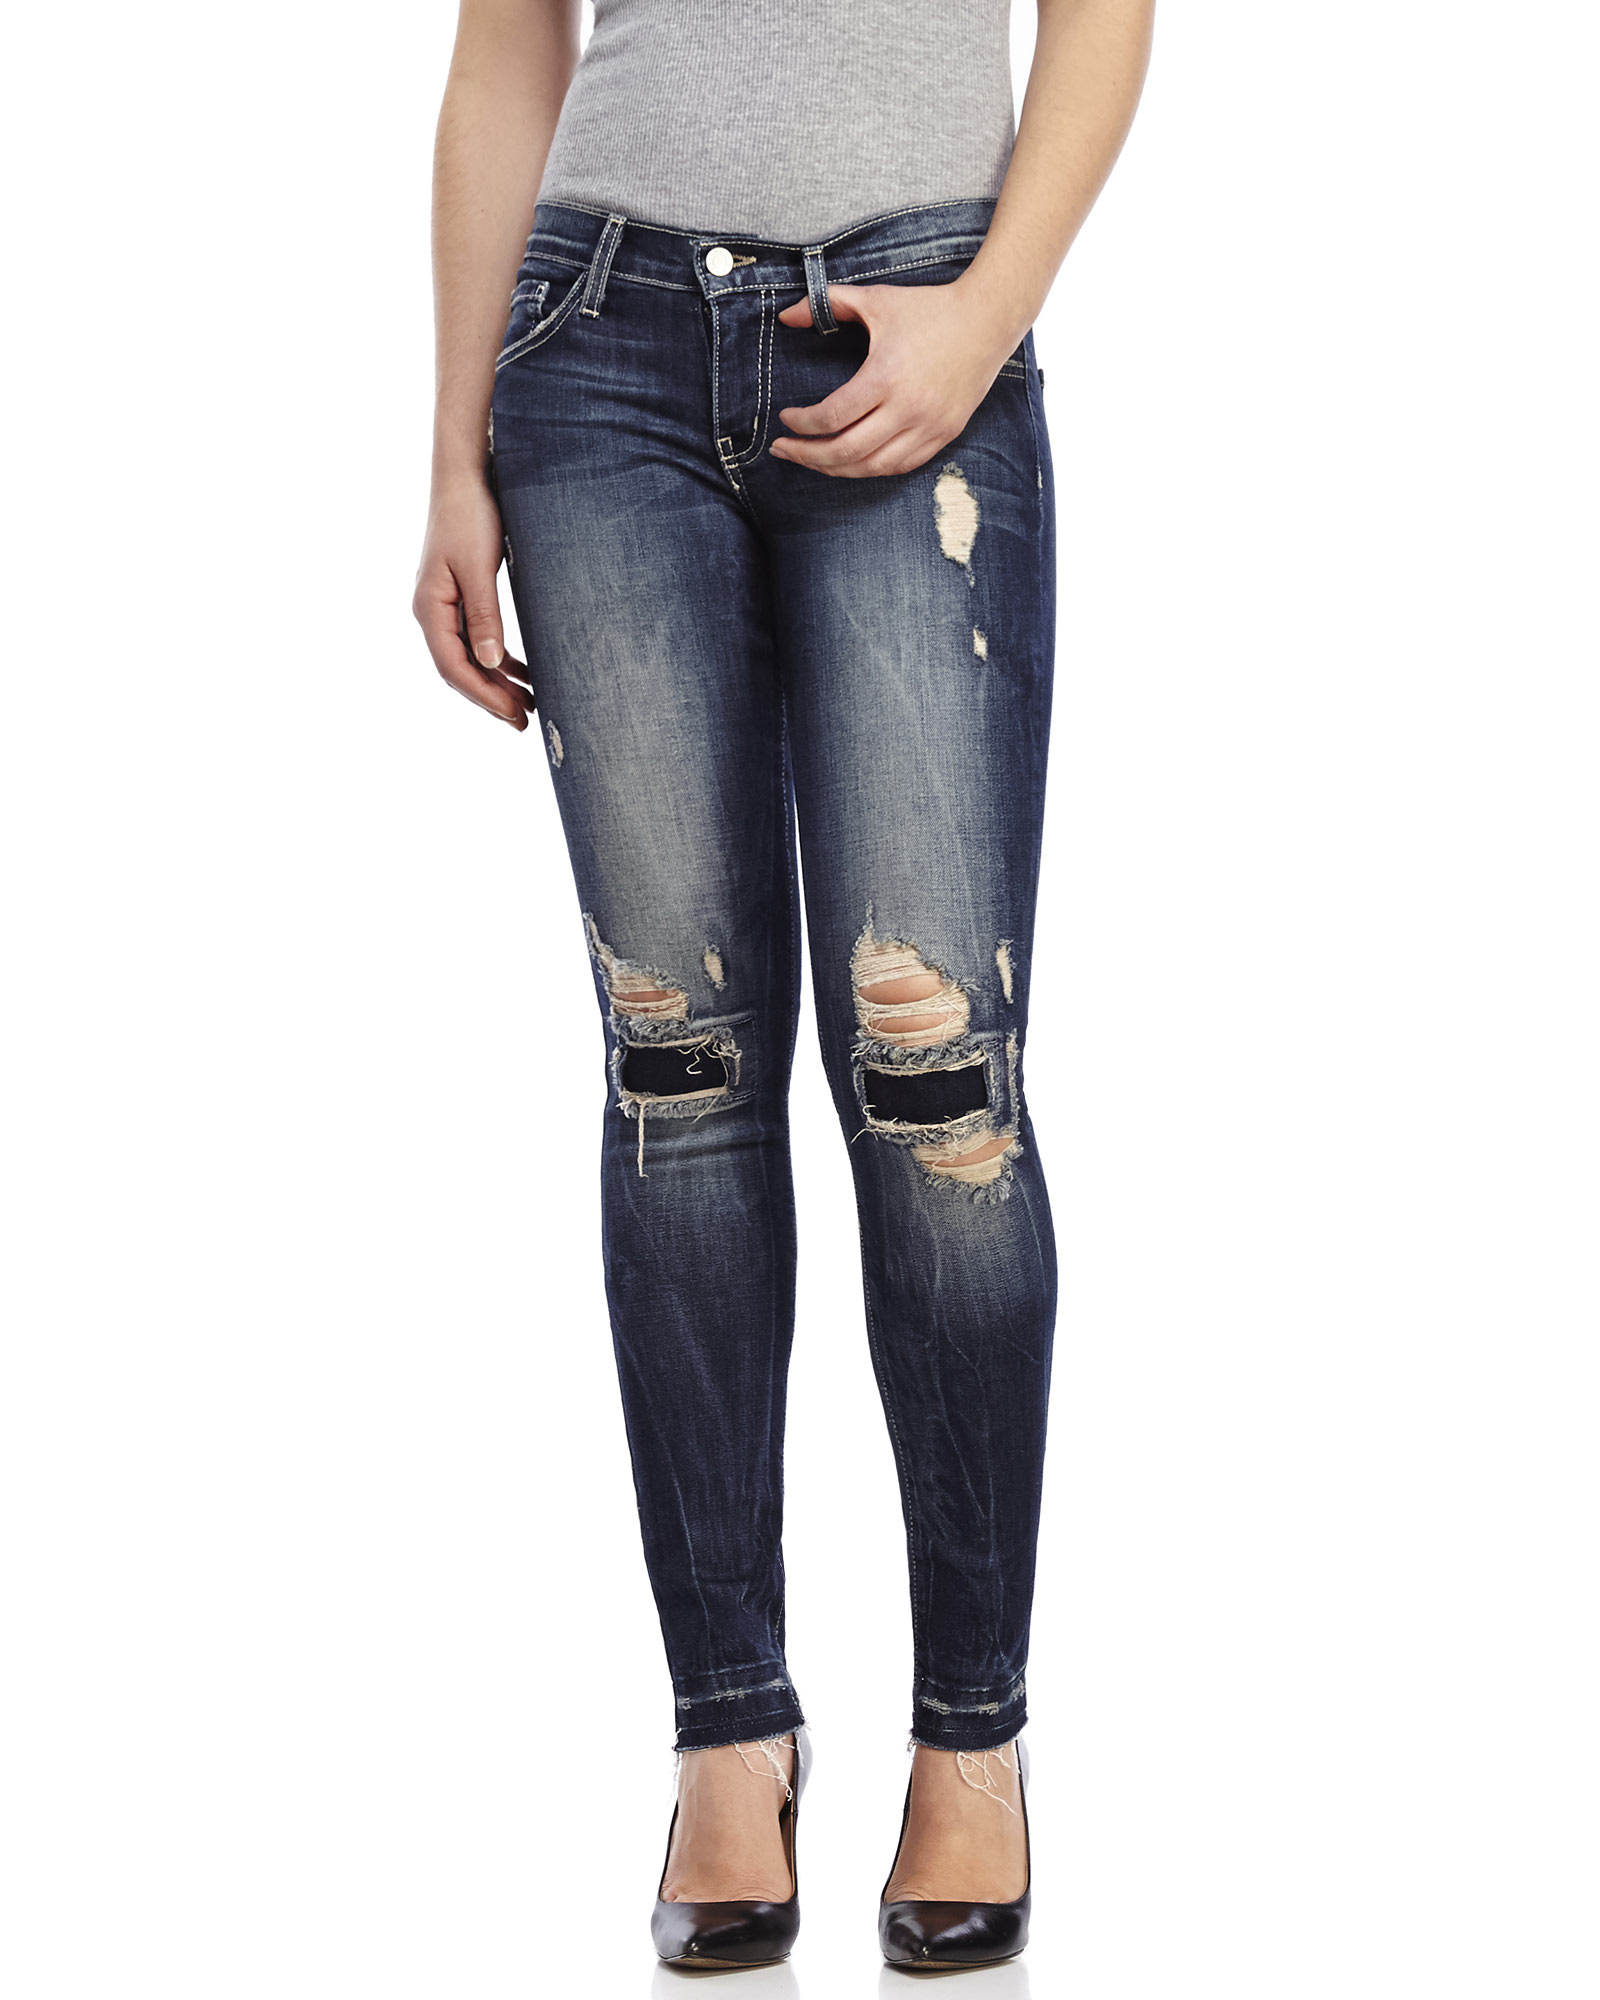 Patch up knees jeans made